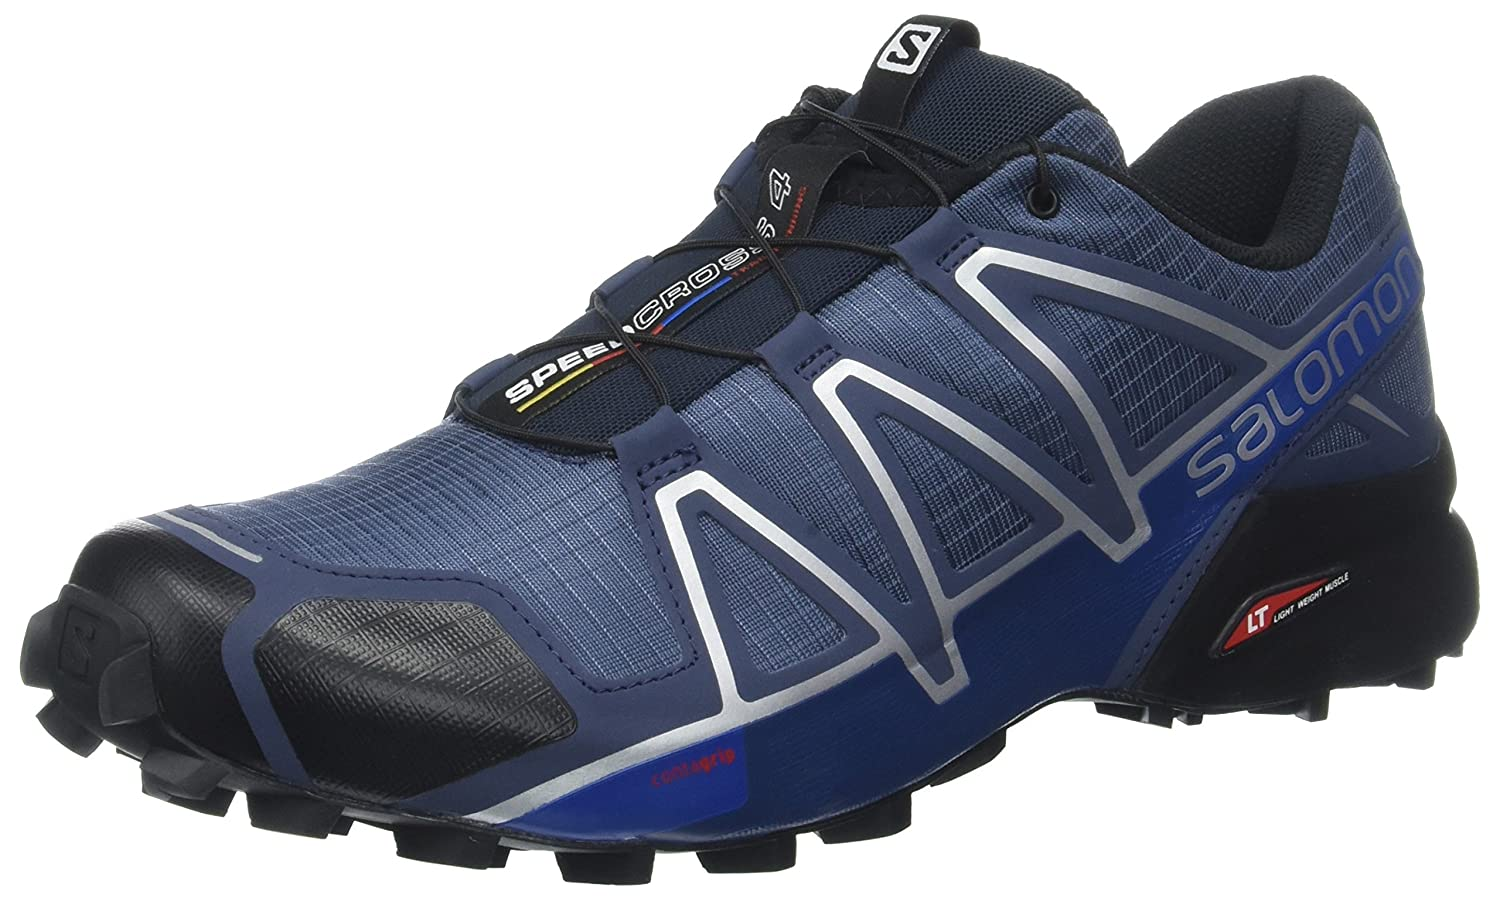 2d52e8dea11f Salomon Men s Speedcross 4 Trail Runner